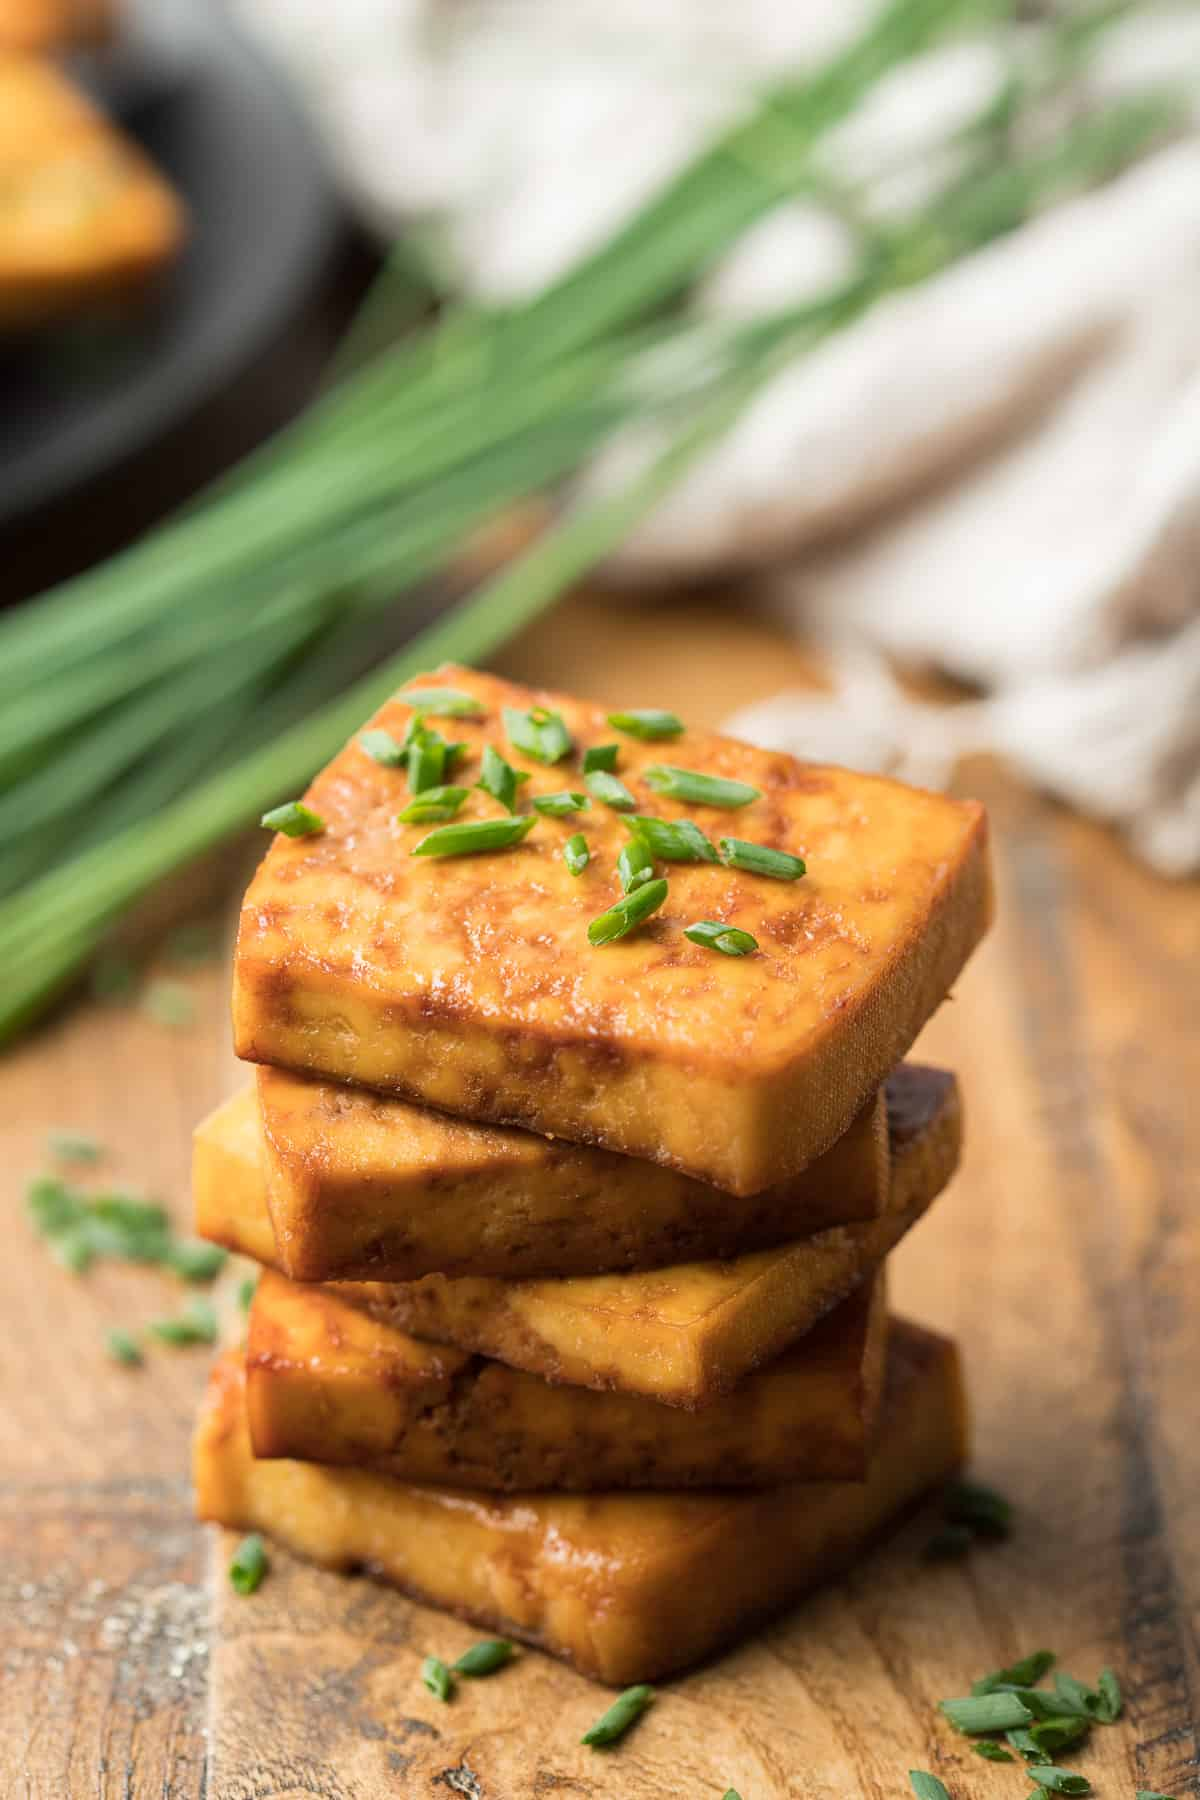 Stack of Smoked Tofu with Chives and Skillet in the Background